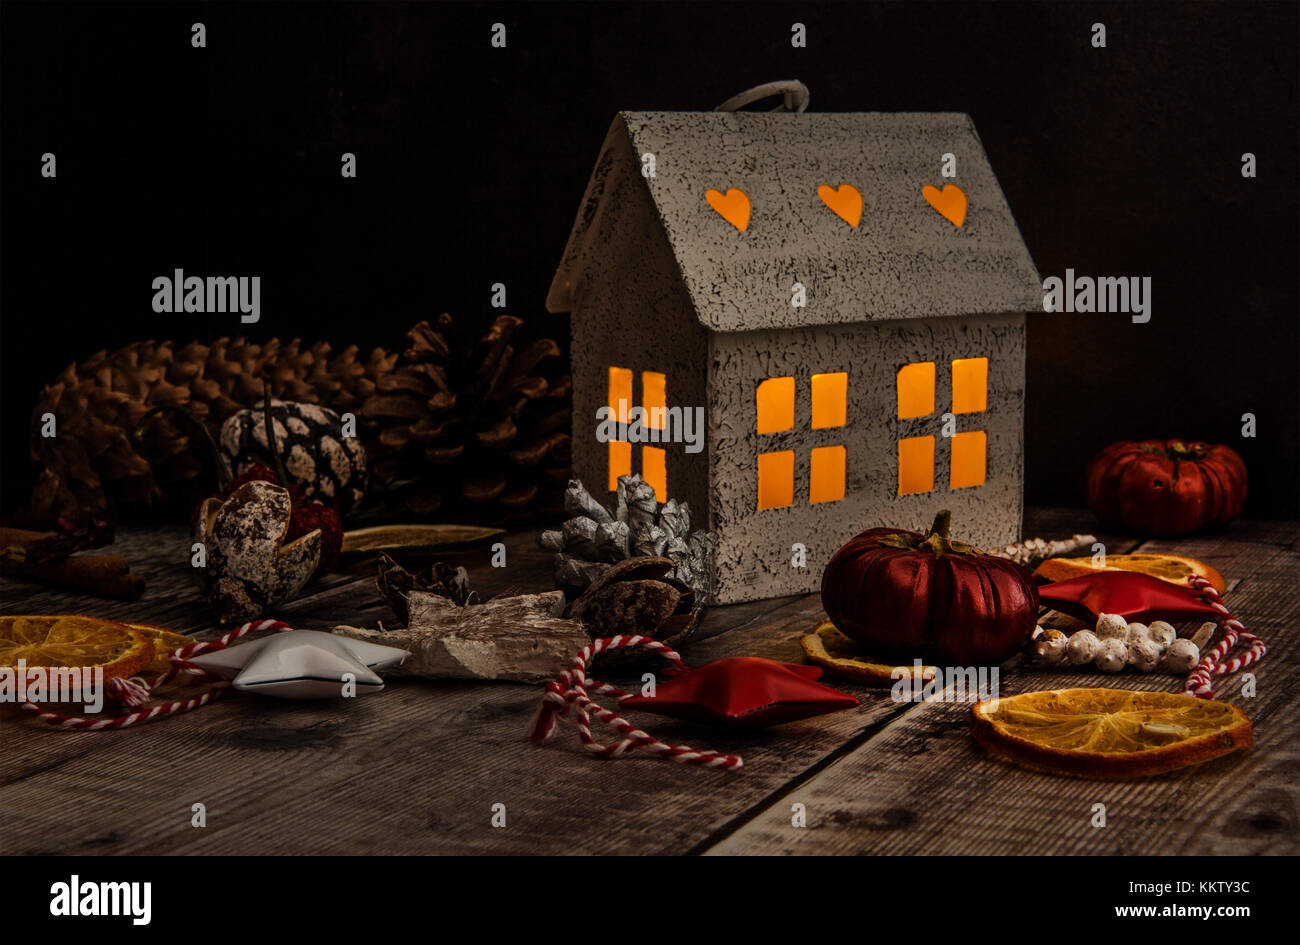 Hygge House with Christmas Decorations - Stock Image